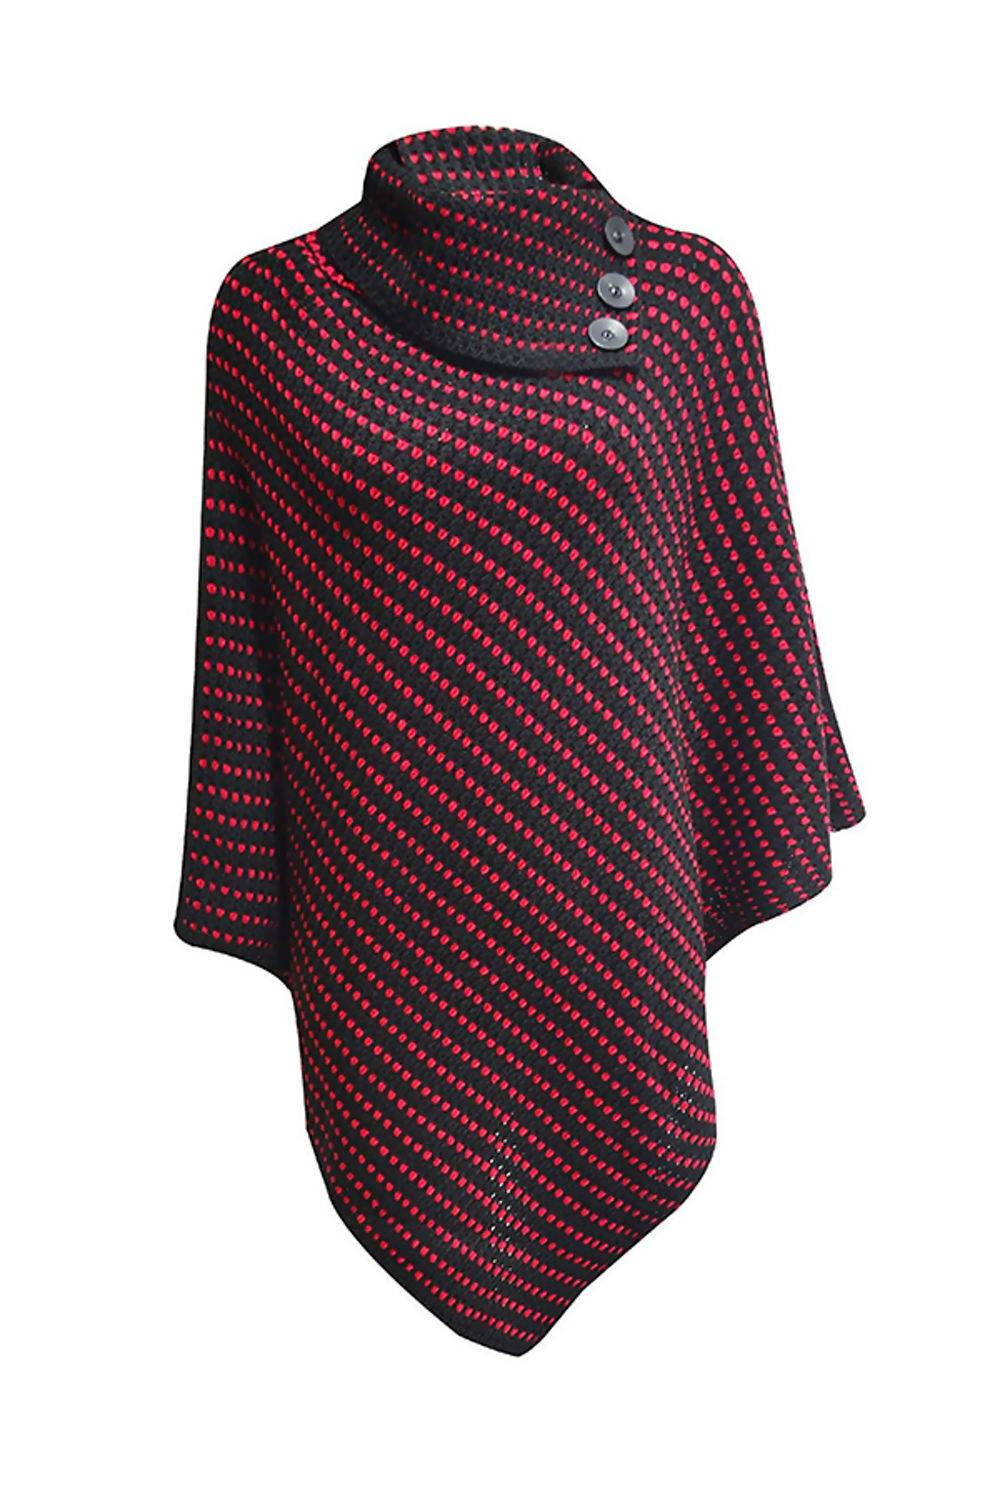 White With Red Dot Detail Cable Knit Poncho J5 Fashion